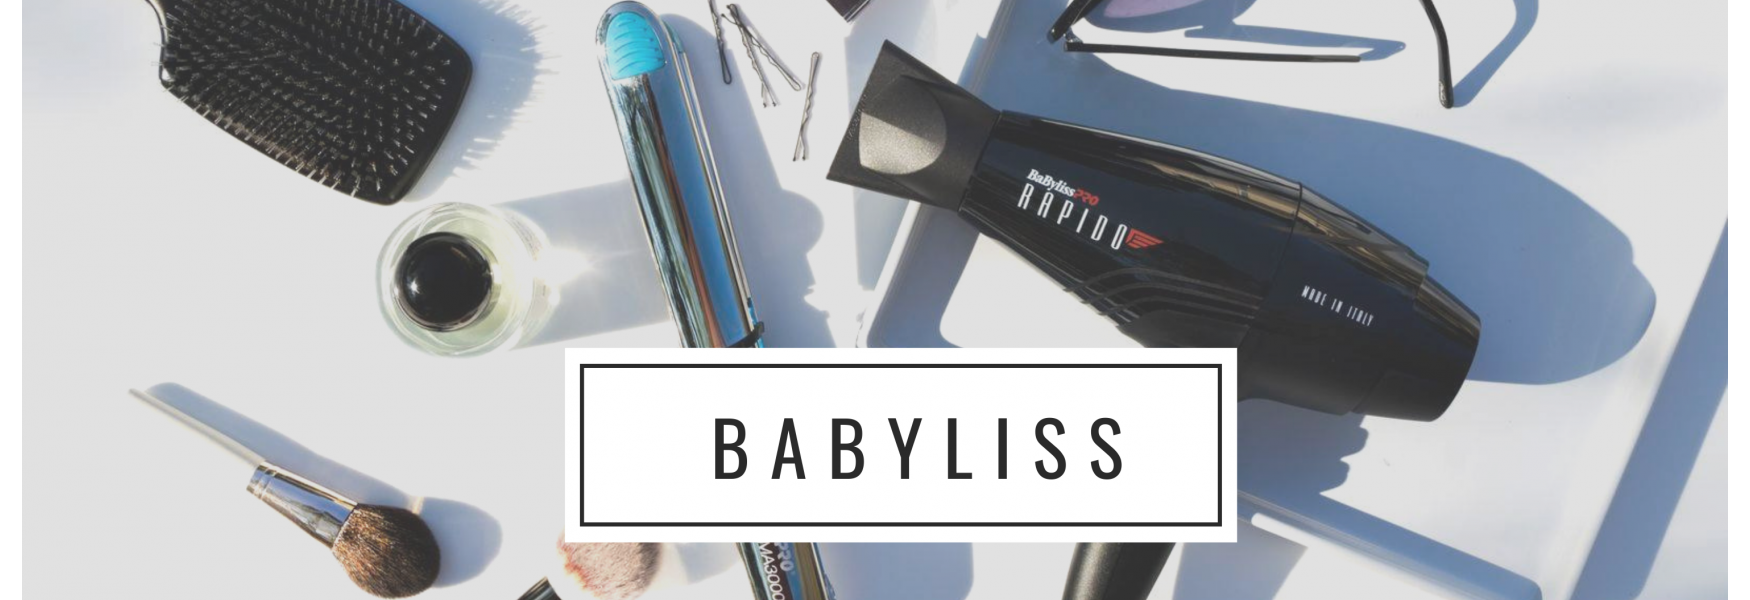 Babyliss Webpage Banner #1